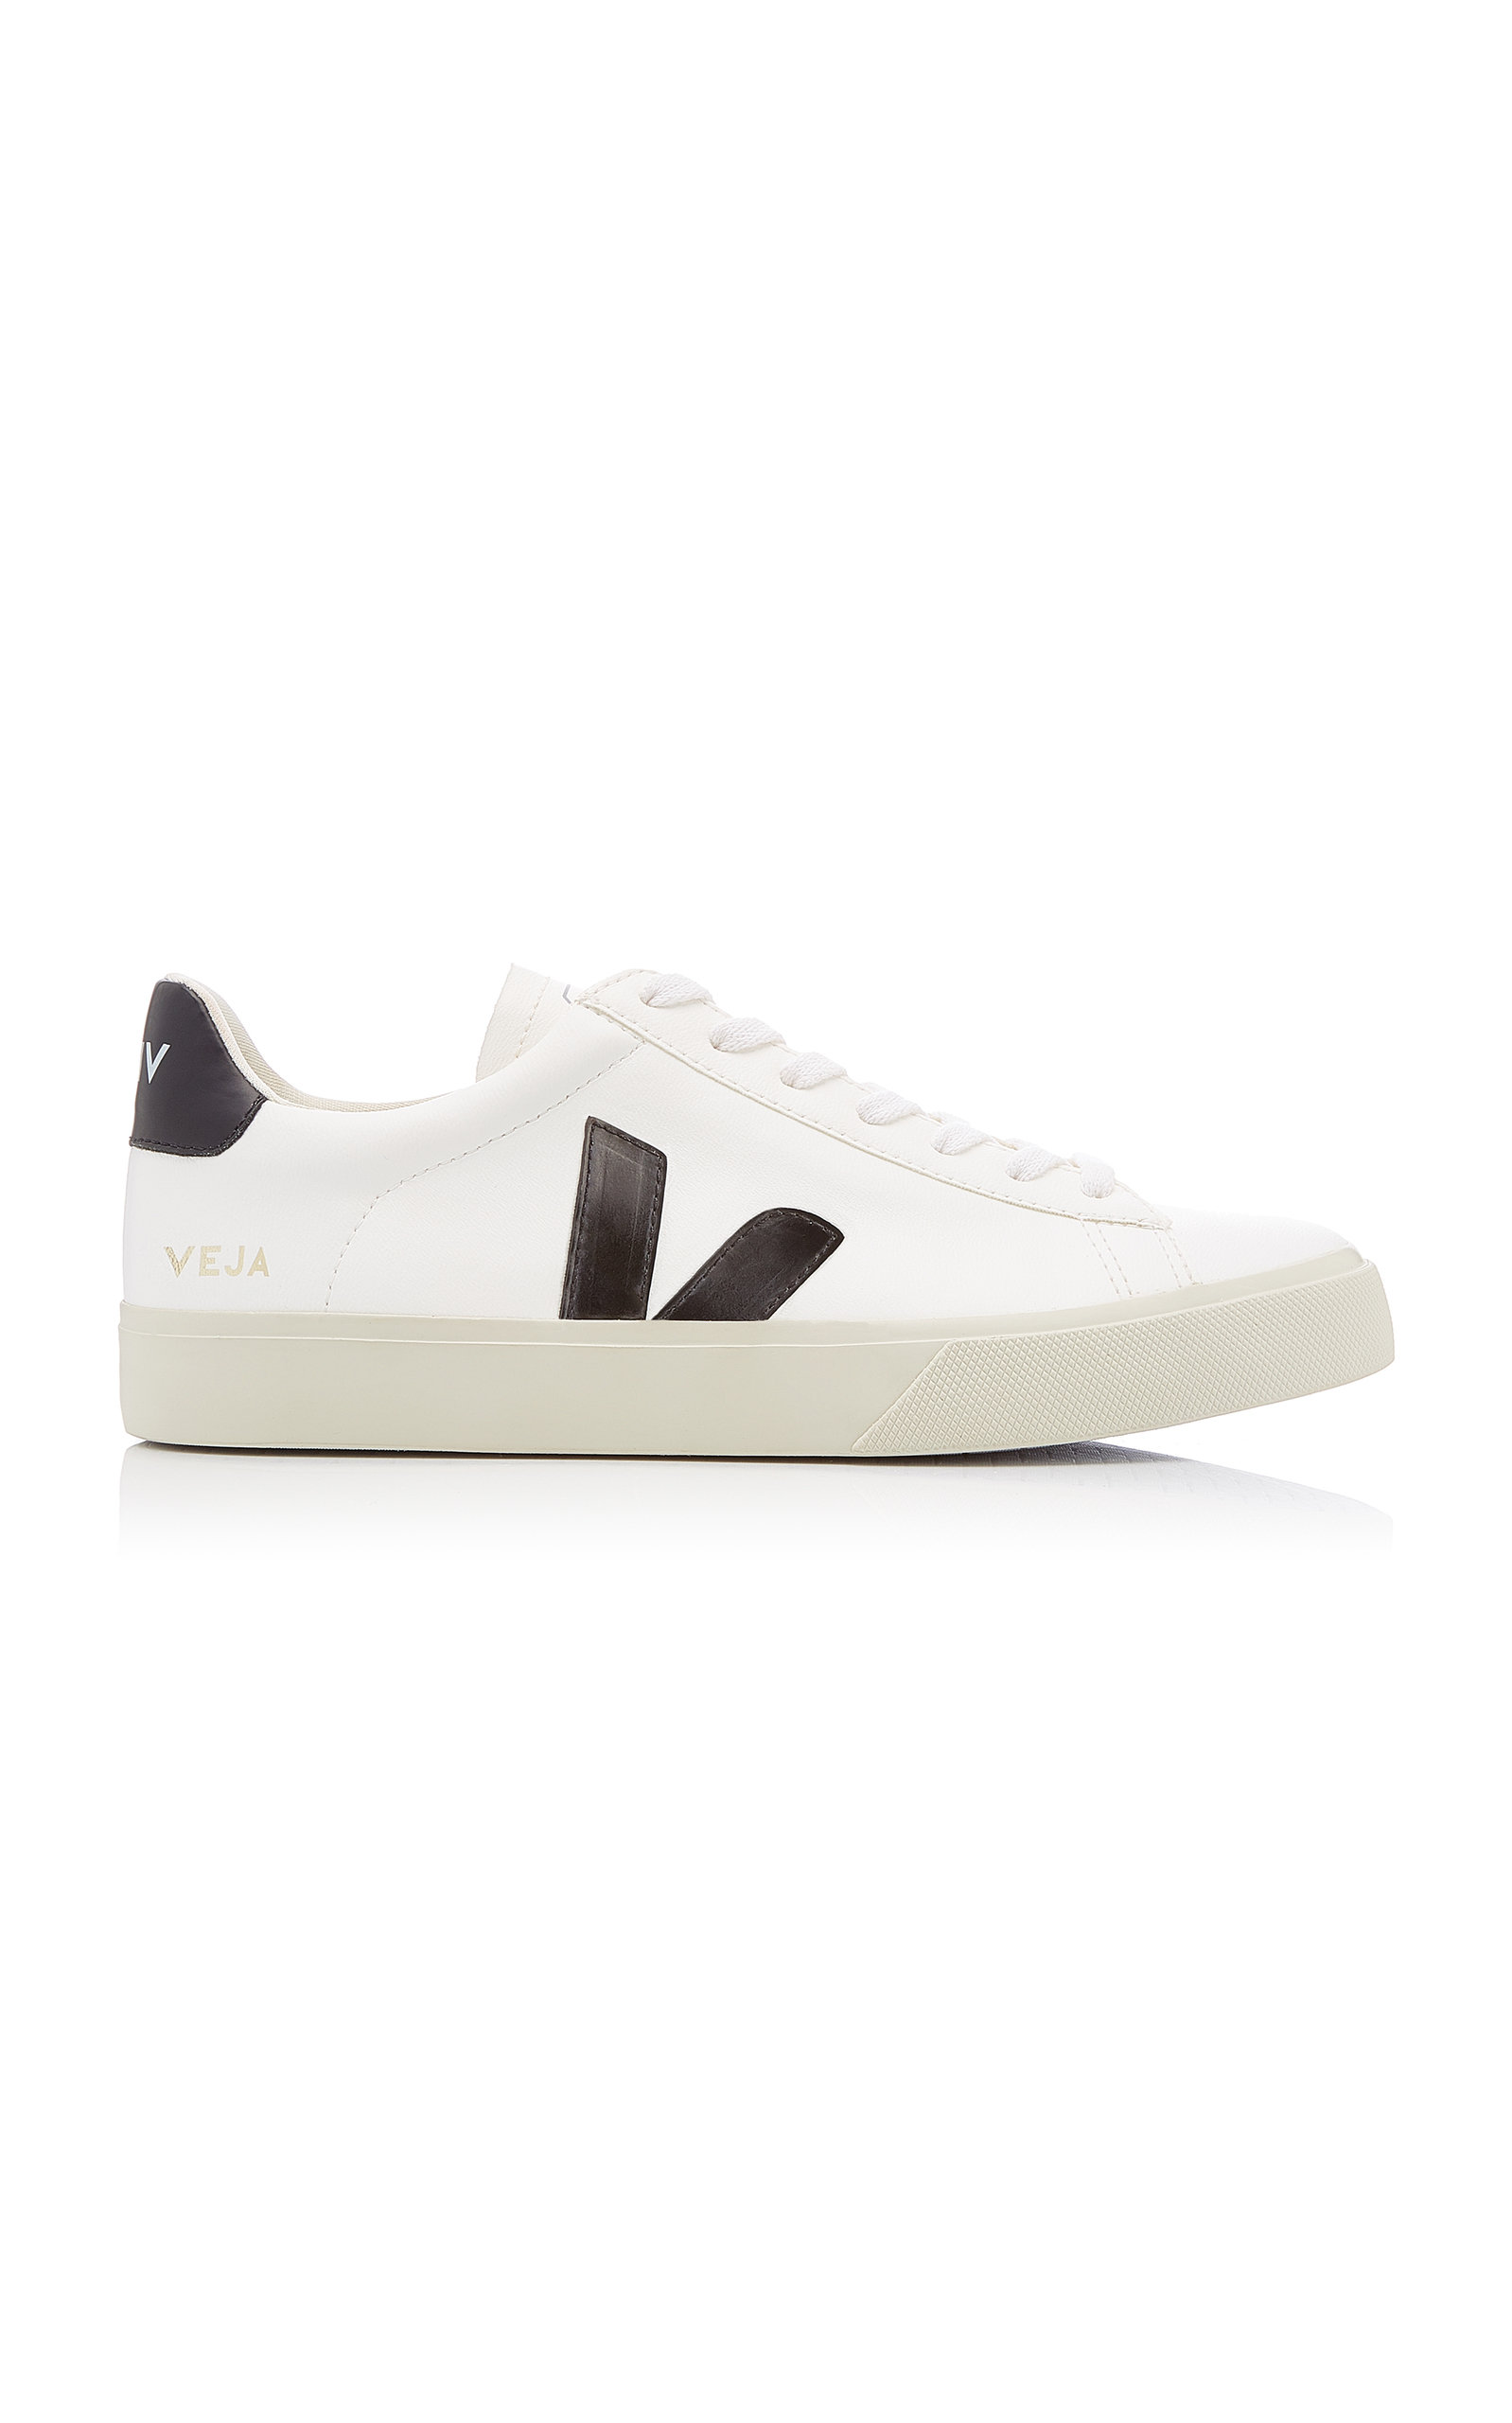 Veja | VEJA Campo Leather Low-Top Sneakers | Clouty